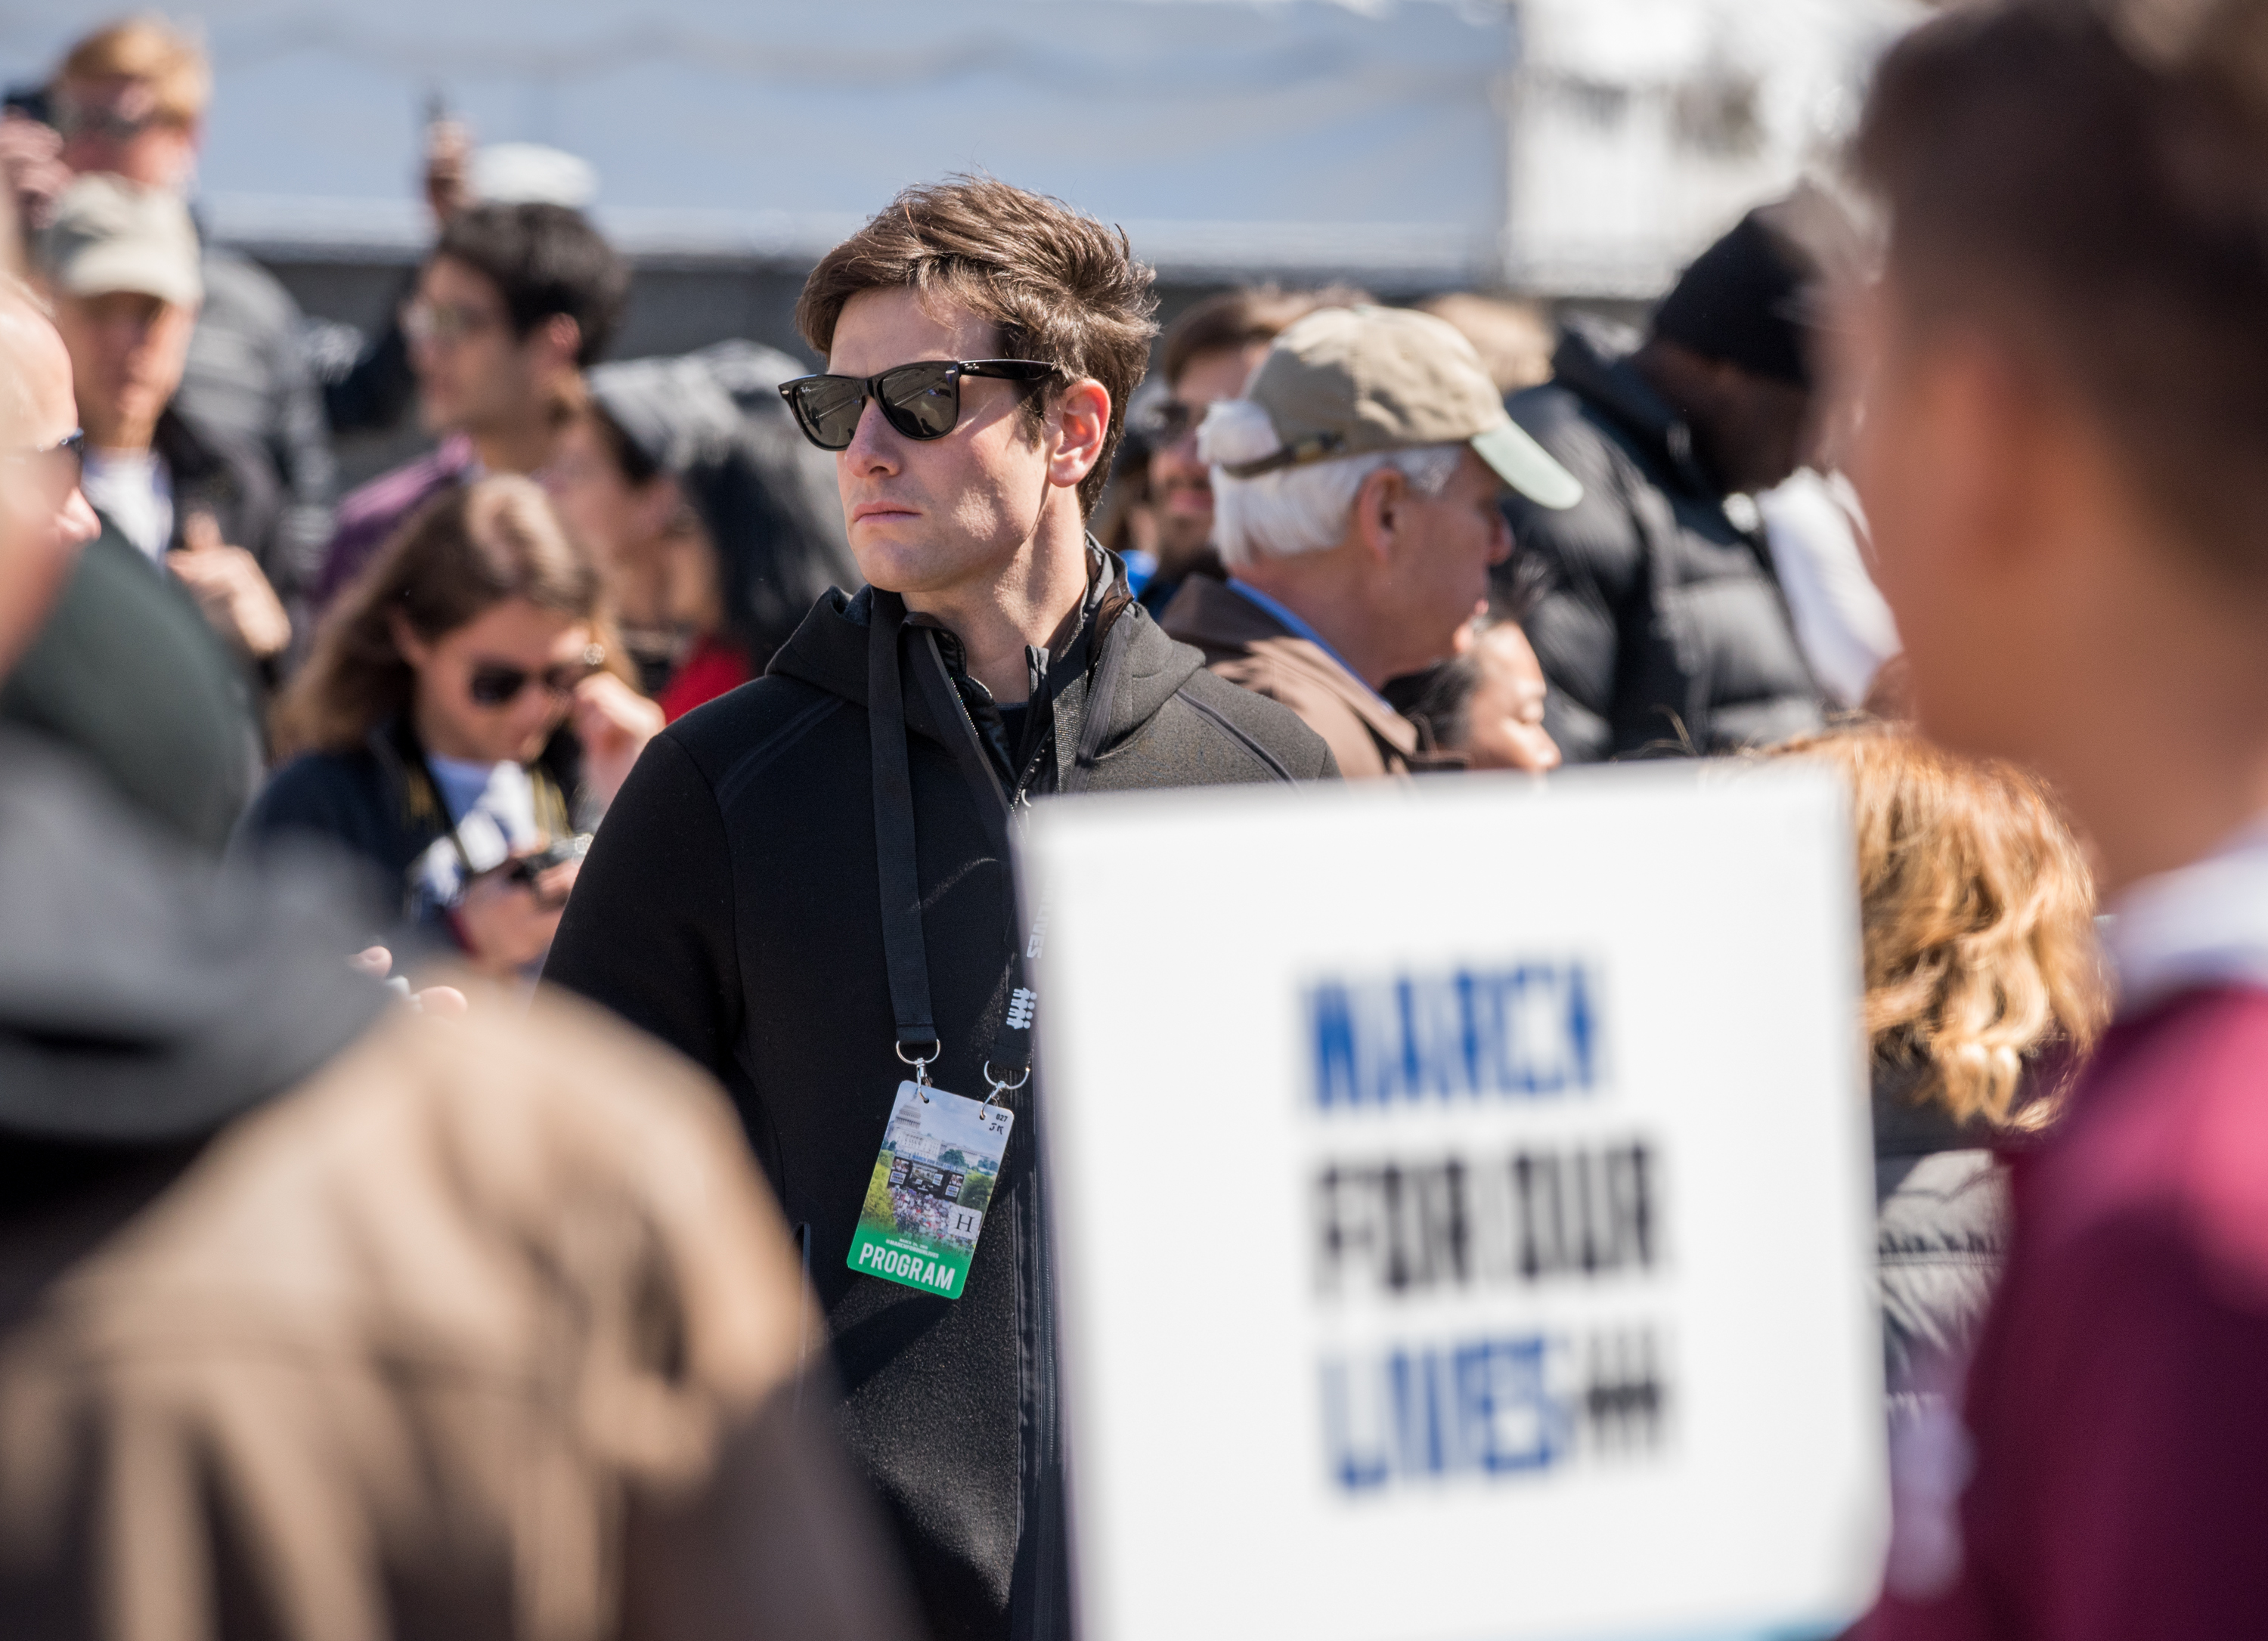 Joshua Kushner is seen during March For Our Lives on March 24, 2018 in Washington, DC.